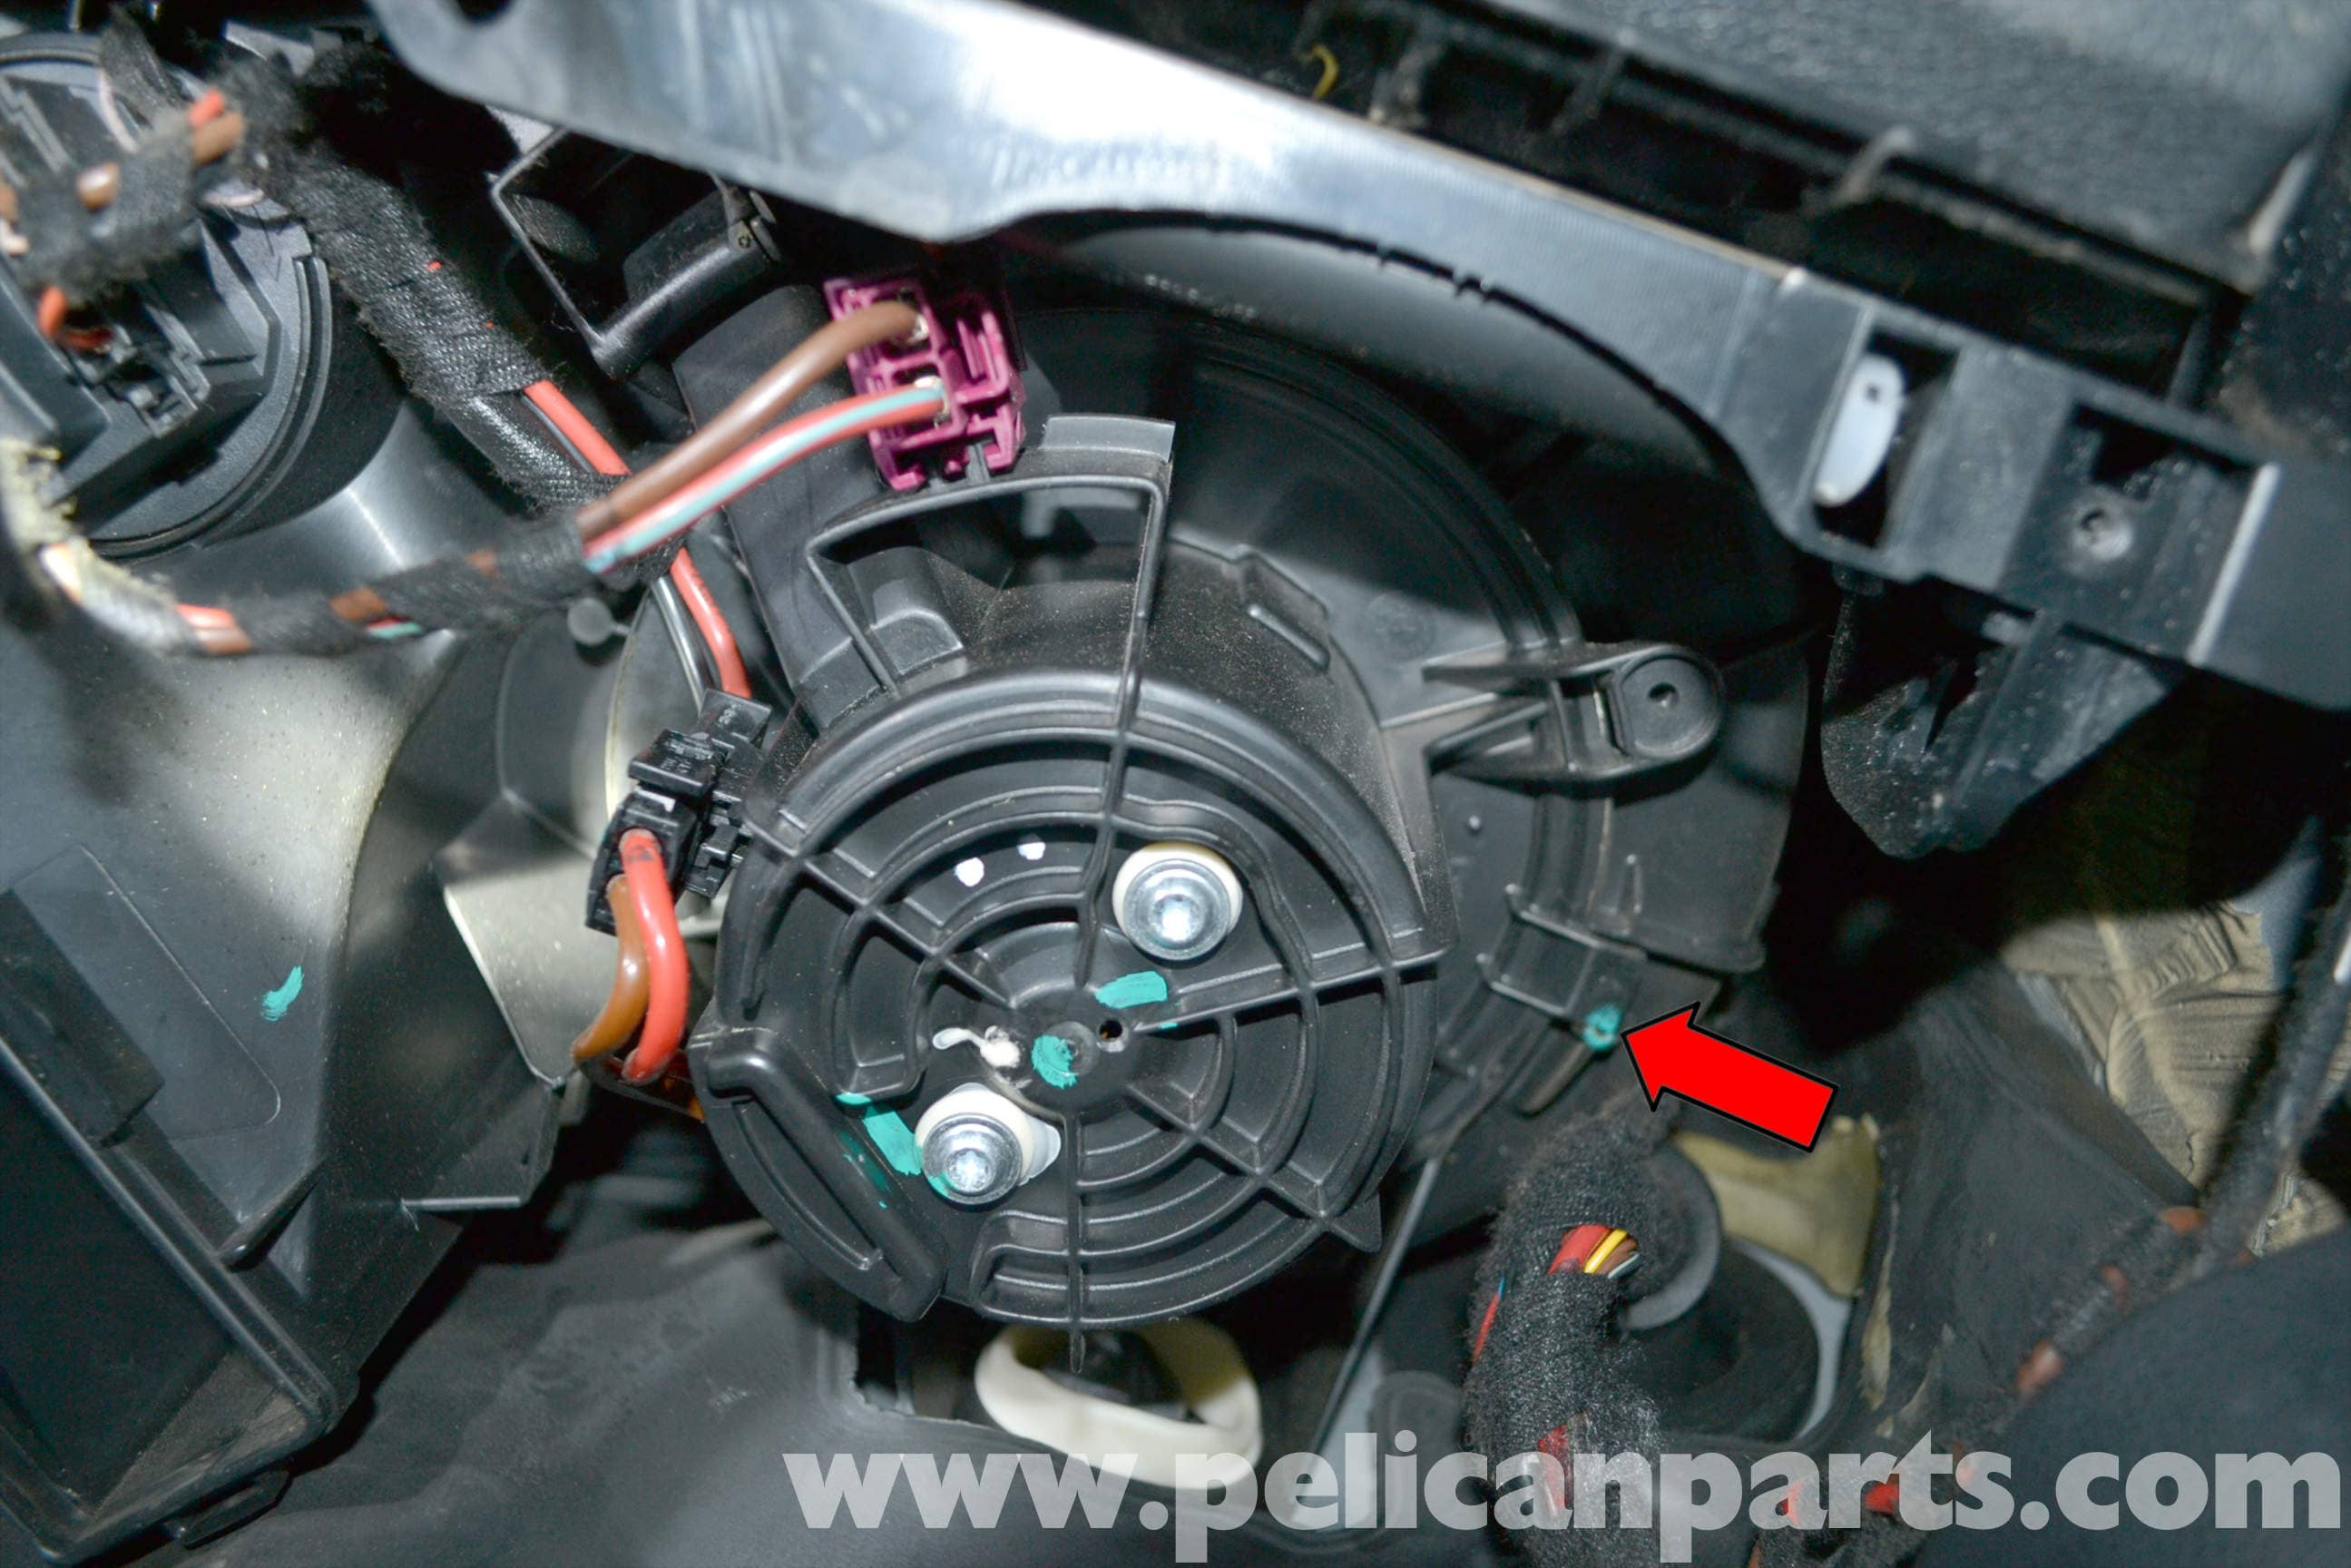 pic06 mercedes benz w204 blower motor replacement (2008 2014) c250 Mercedes C-Class Fuse Box Diagram at bakdesigns.co